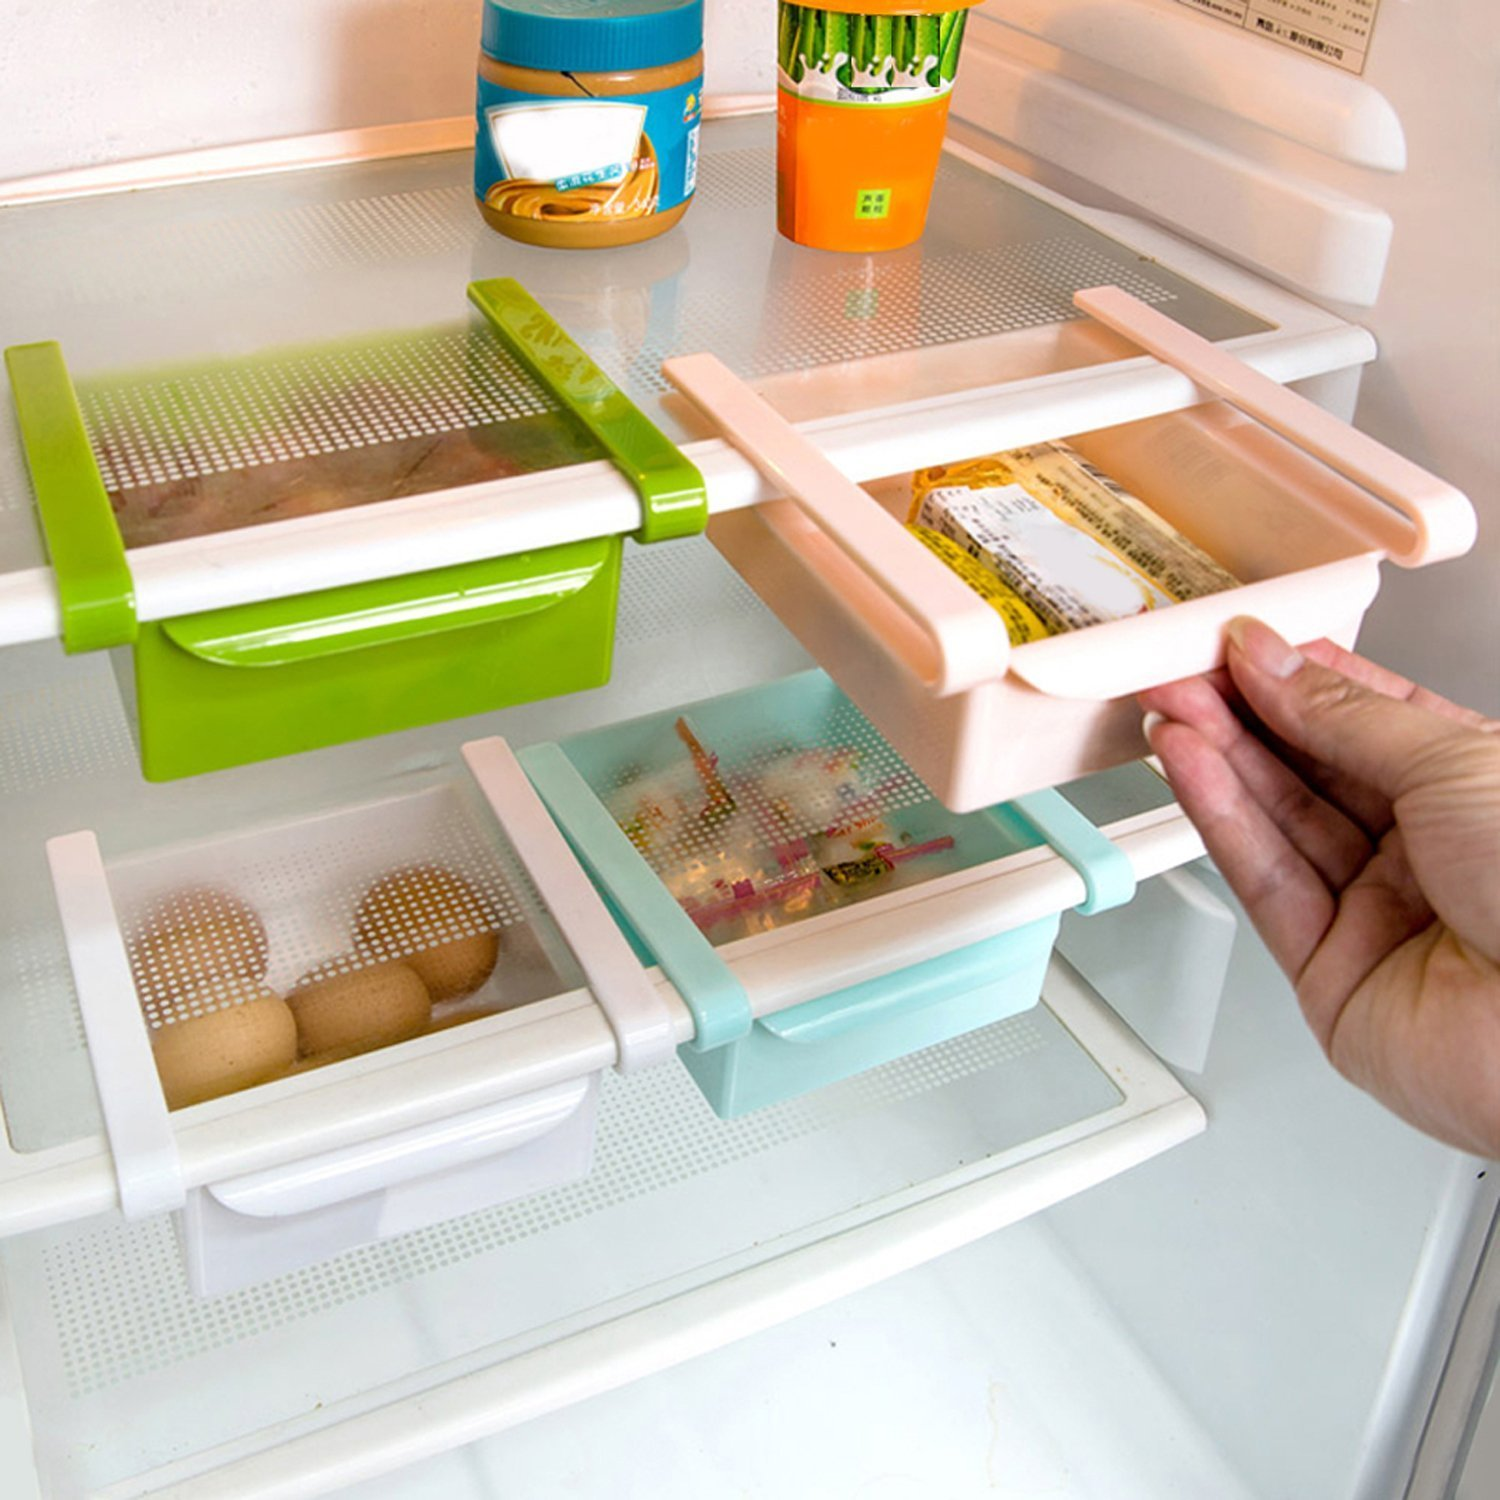 Tips to clean and organize a refrigerator - so many great tips! Hoping it helps me keep my refrigerator clean!